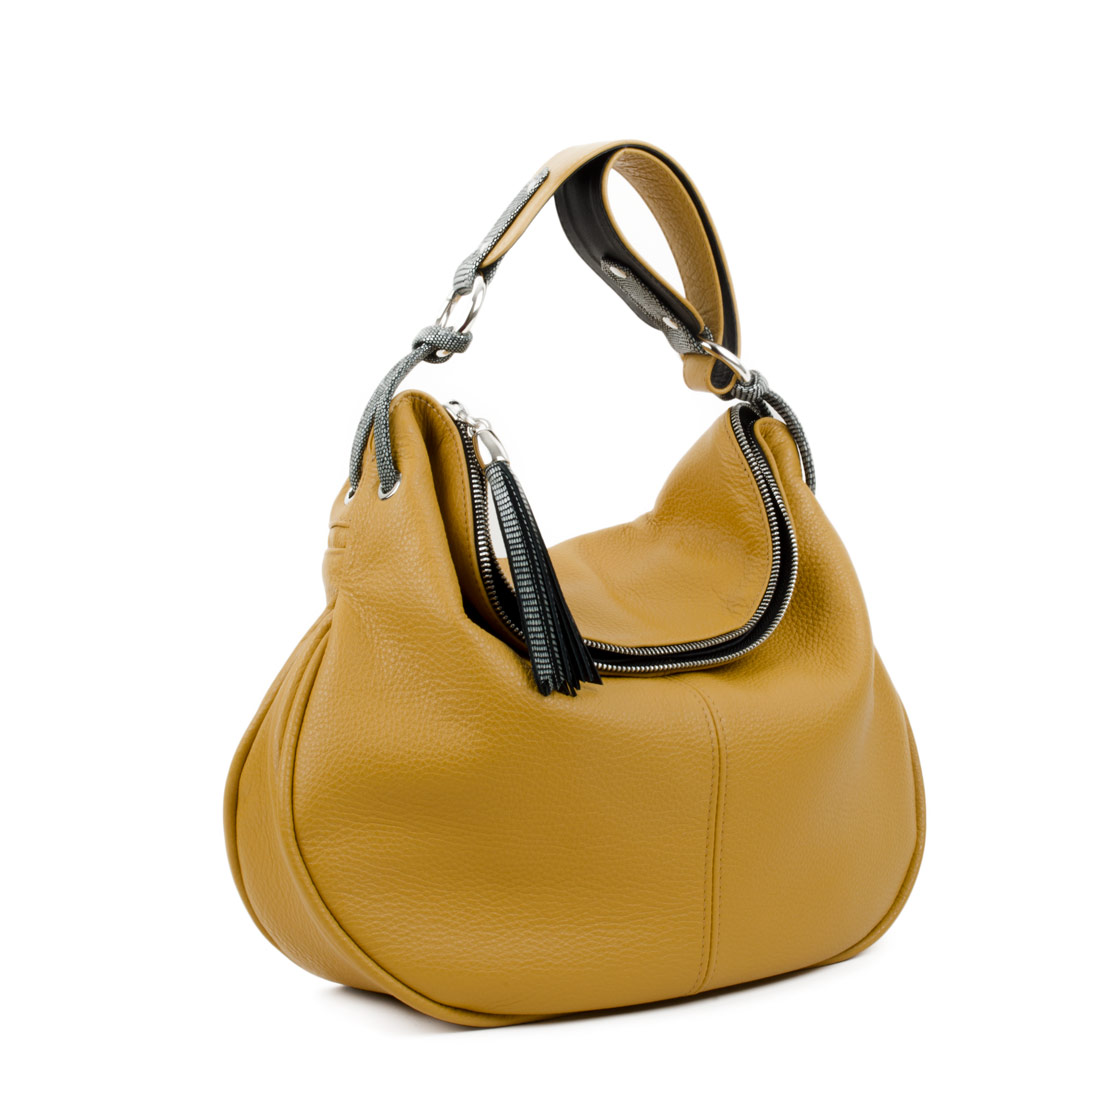 Matilda Mustard Leather Shoulder Bag